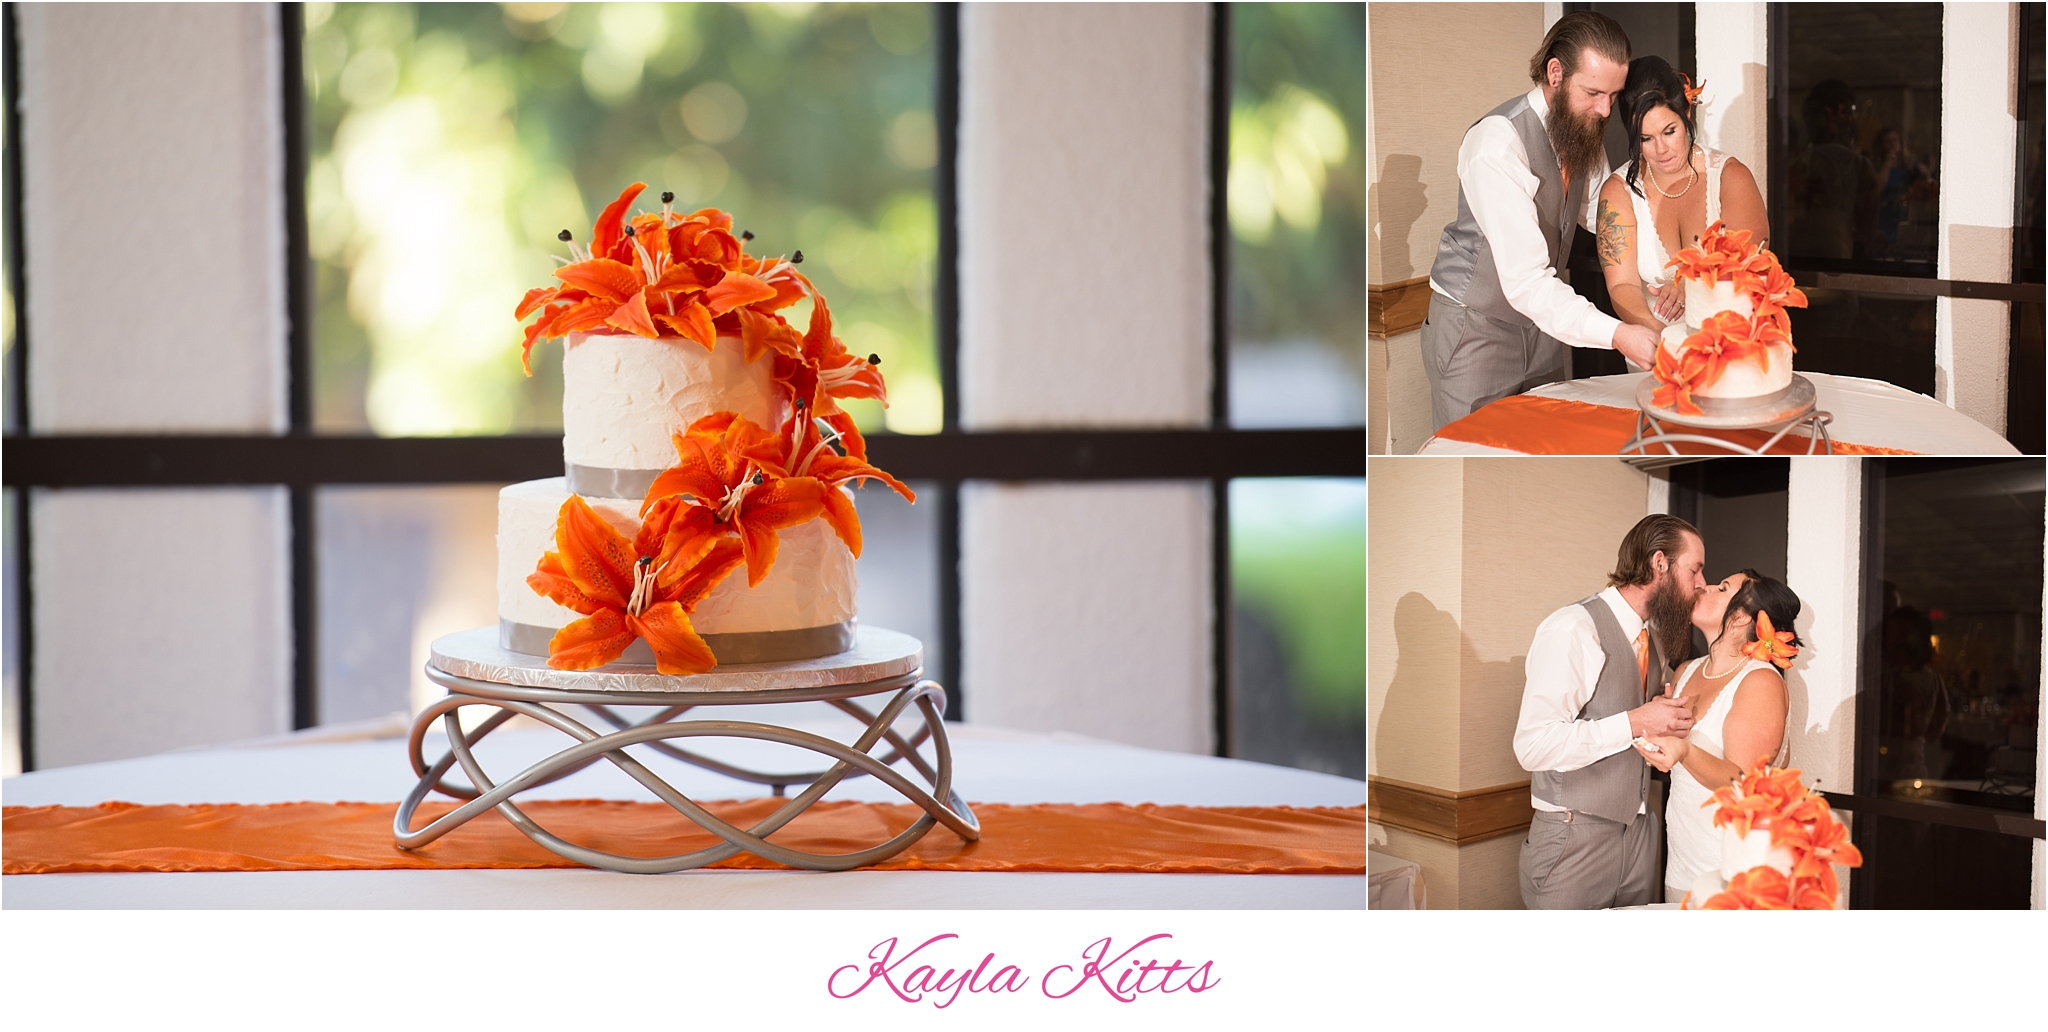 kayla kitts photography - albuquerque wedding photographer - albuquerque wedding photography - albuquerque venue - casa de suenos - hotel albuquerque wedding - new mexico wedding photographer - los poblanos wedding_0014.jpeg